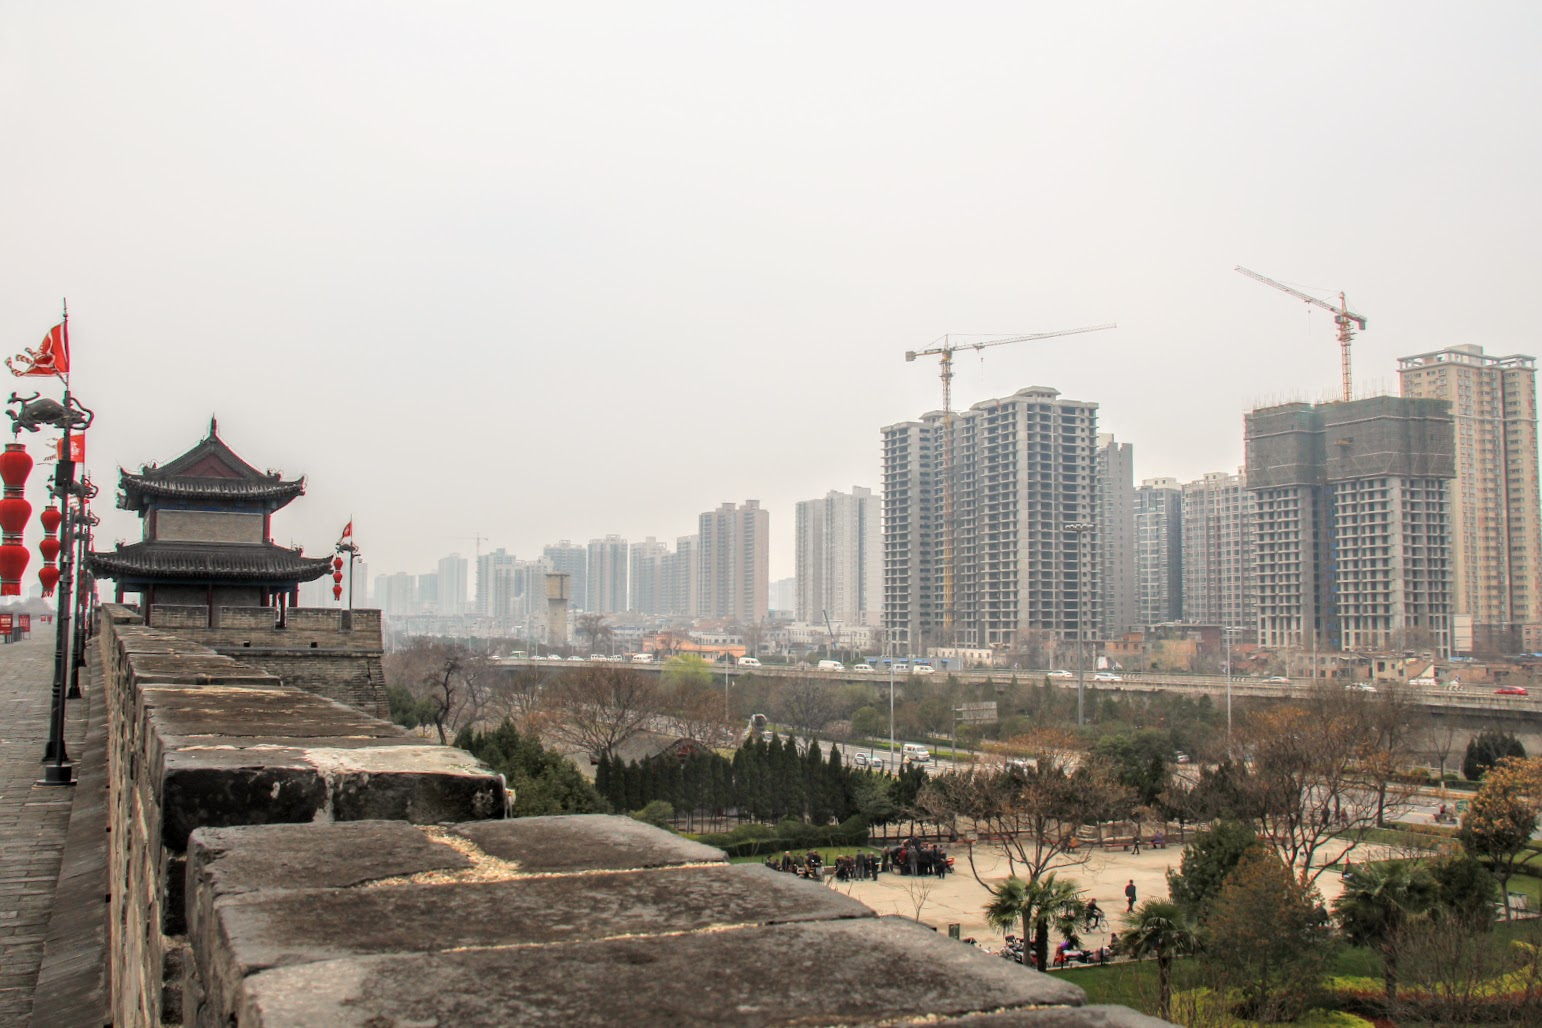 Xi'an actively expanding, view from the fortified wall